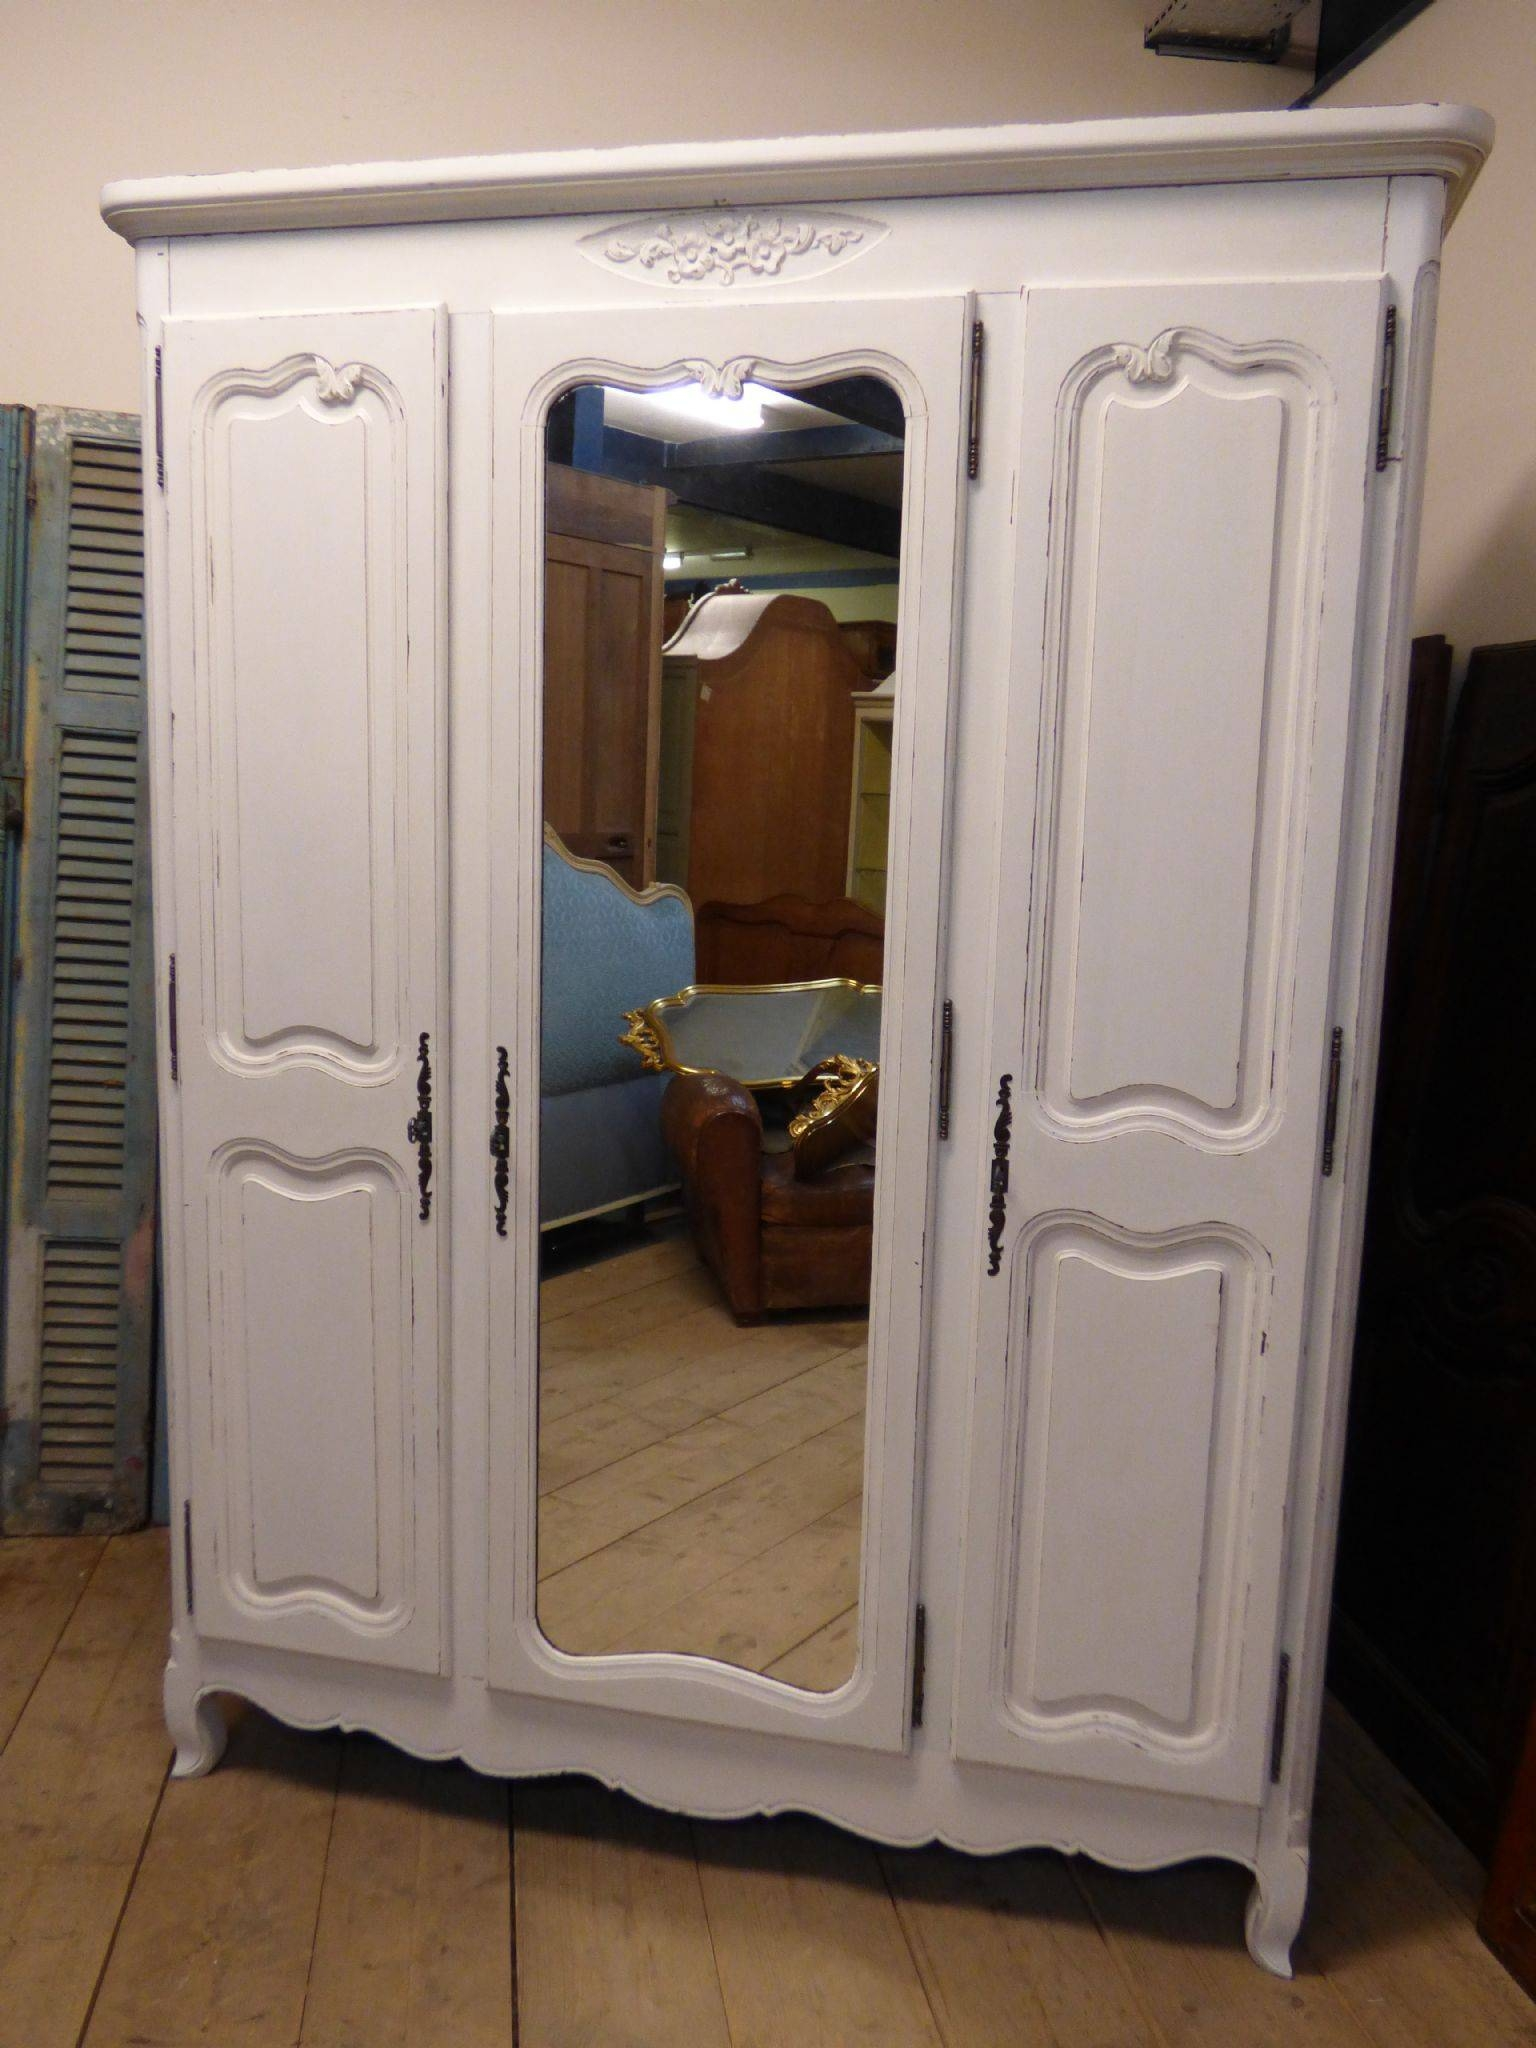 Bedroom Furniture - The French Depot within Vintage French Wardrobes (Image 5 of 15)